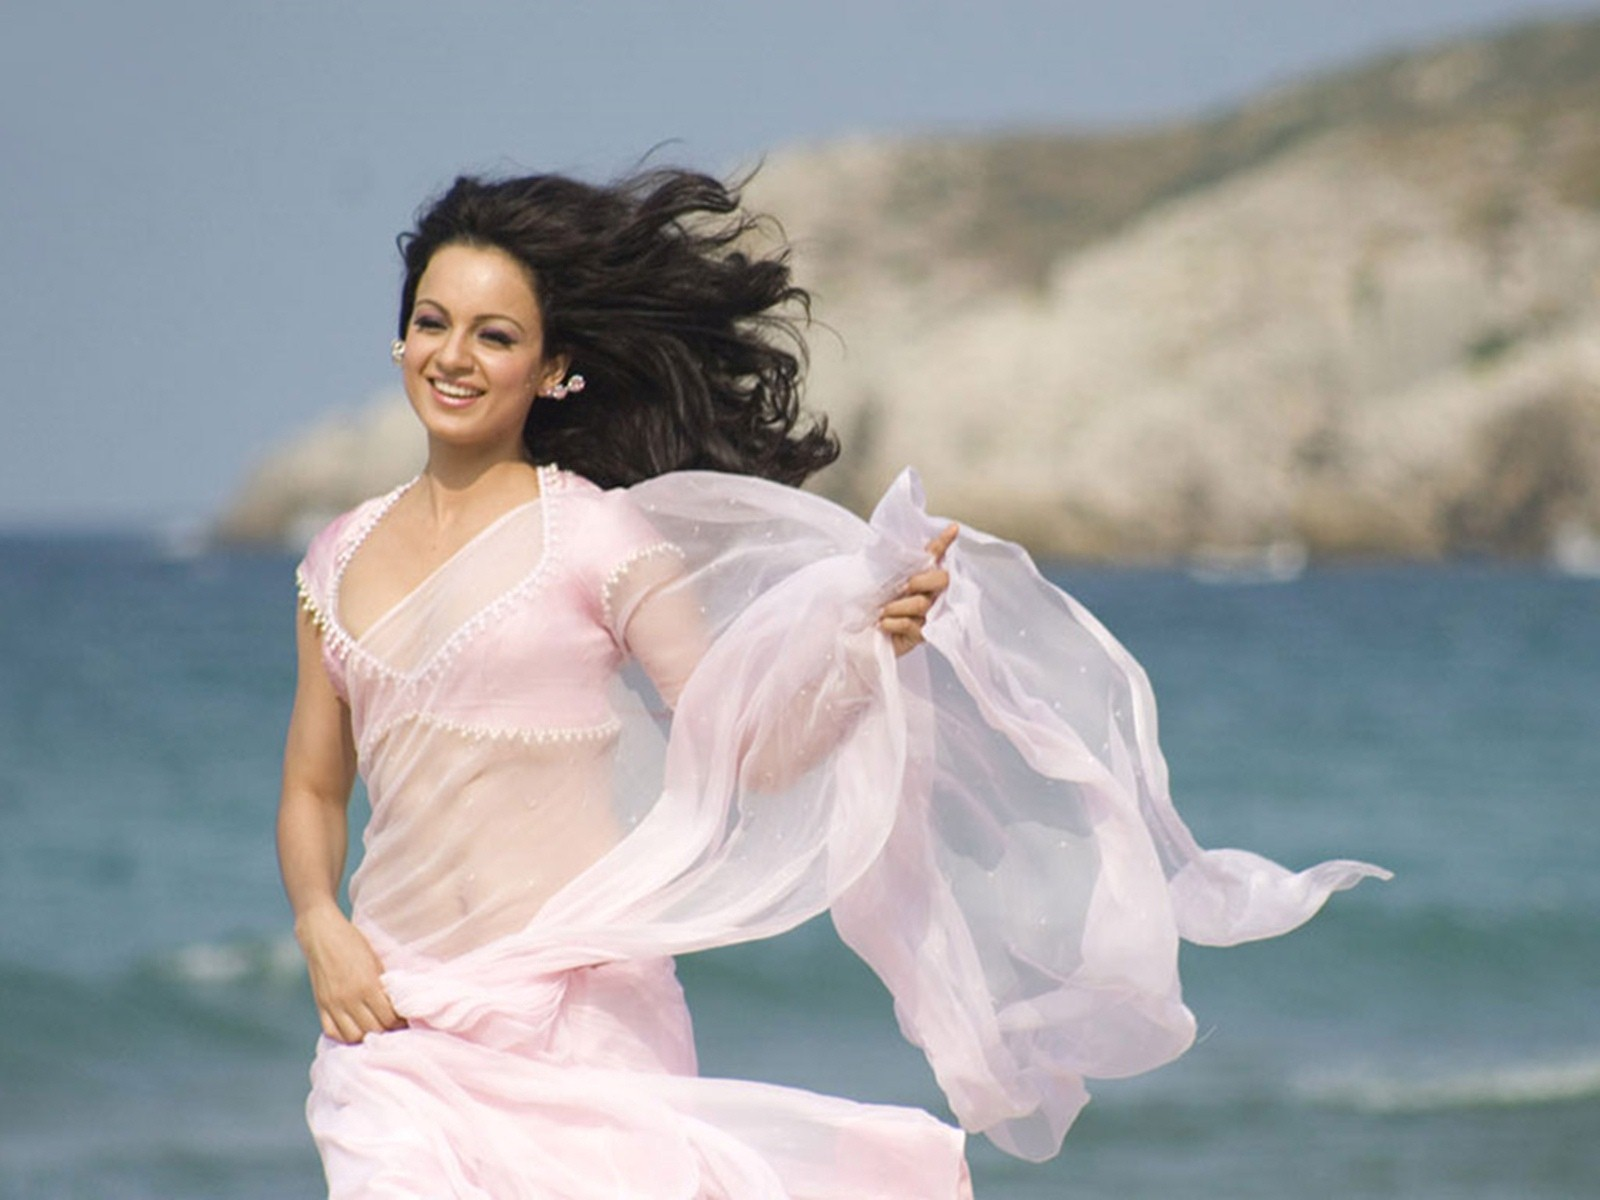 amazing kangana ranaut smiling in run background mobile free hd download photos